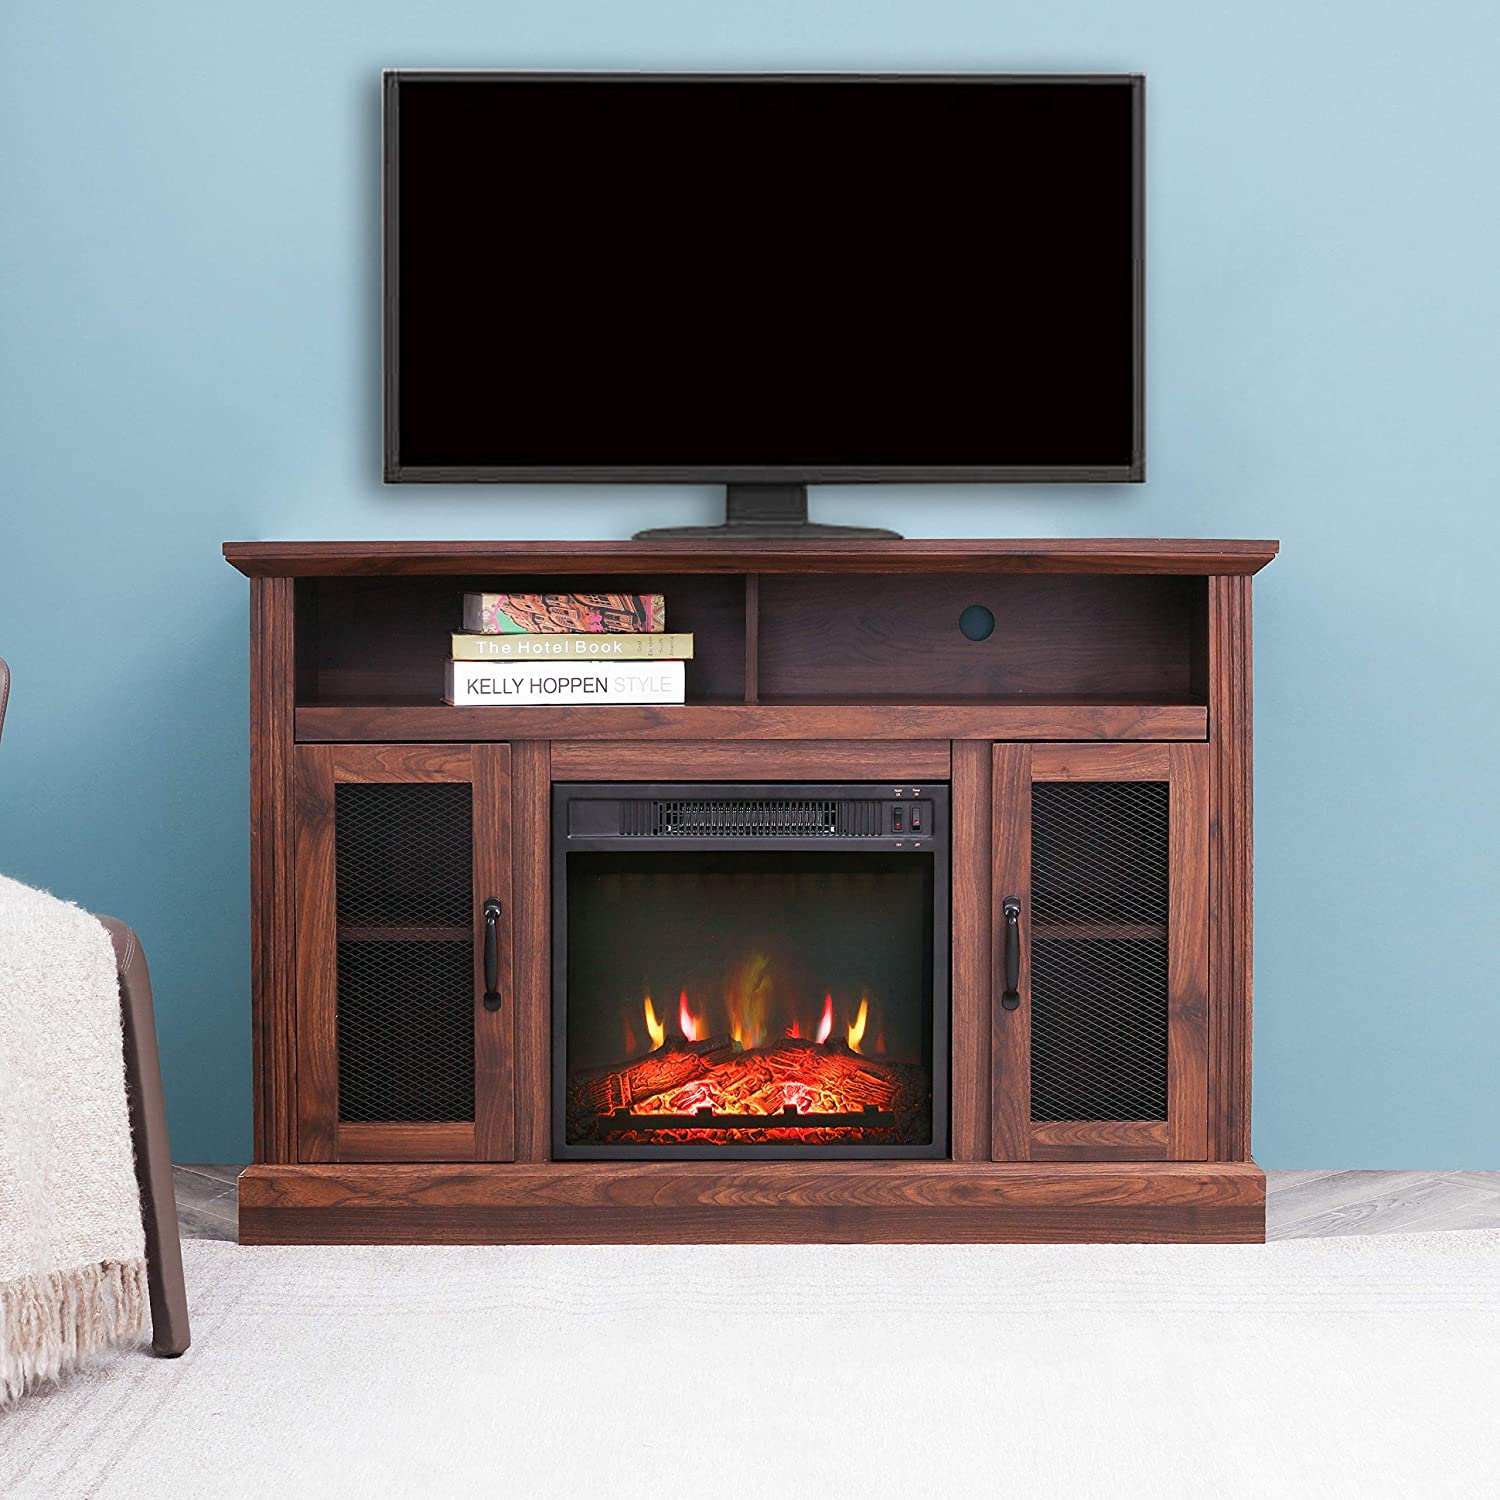 Amazon Com Lokatse Home Tall Electric Fireplace Stand Console For Tv S Up To 55 Living Room Storage Entertainment Center Espresso Walnut Furniture Decor